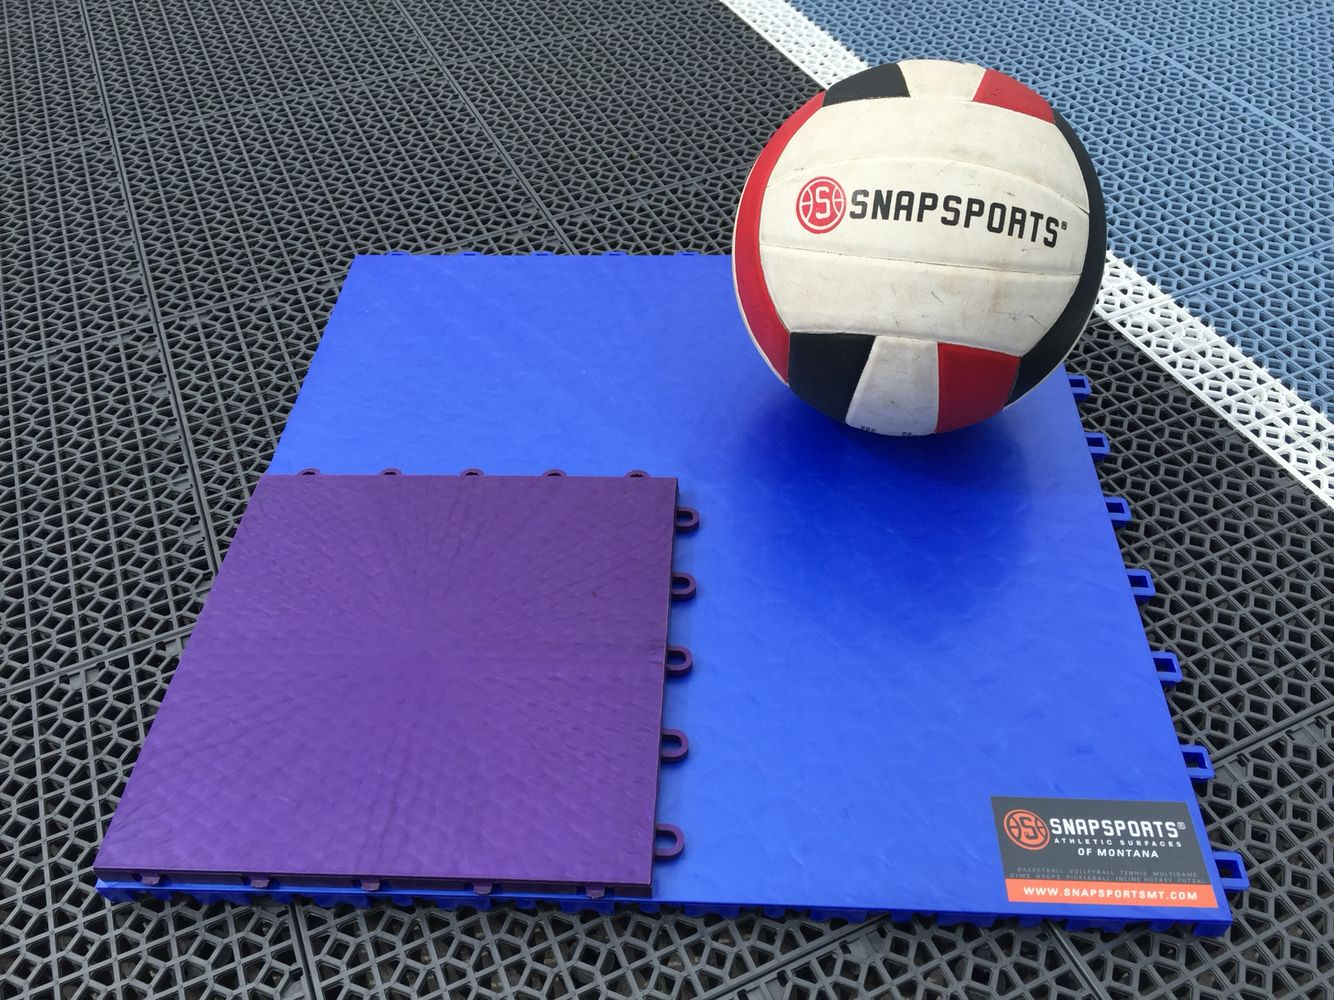 Snapsports 50 50 Volleyballsurface In Blue Compared To The Much Smaller Imitation Court In Purple Officialcourt 70 Lessseams At Home Gym Volleyball Sports